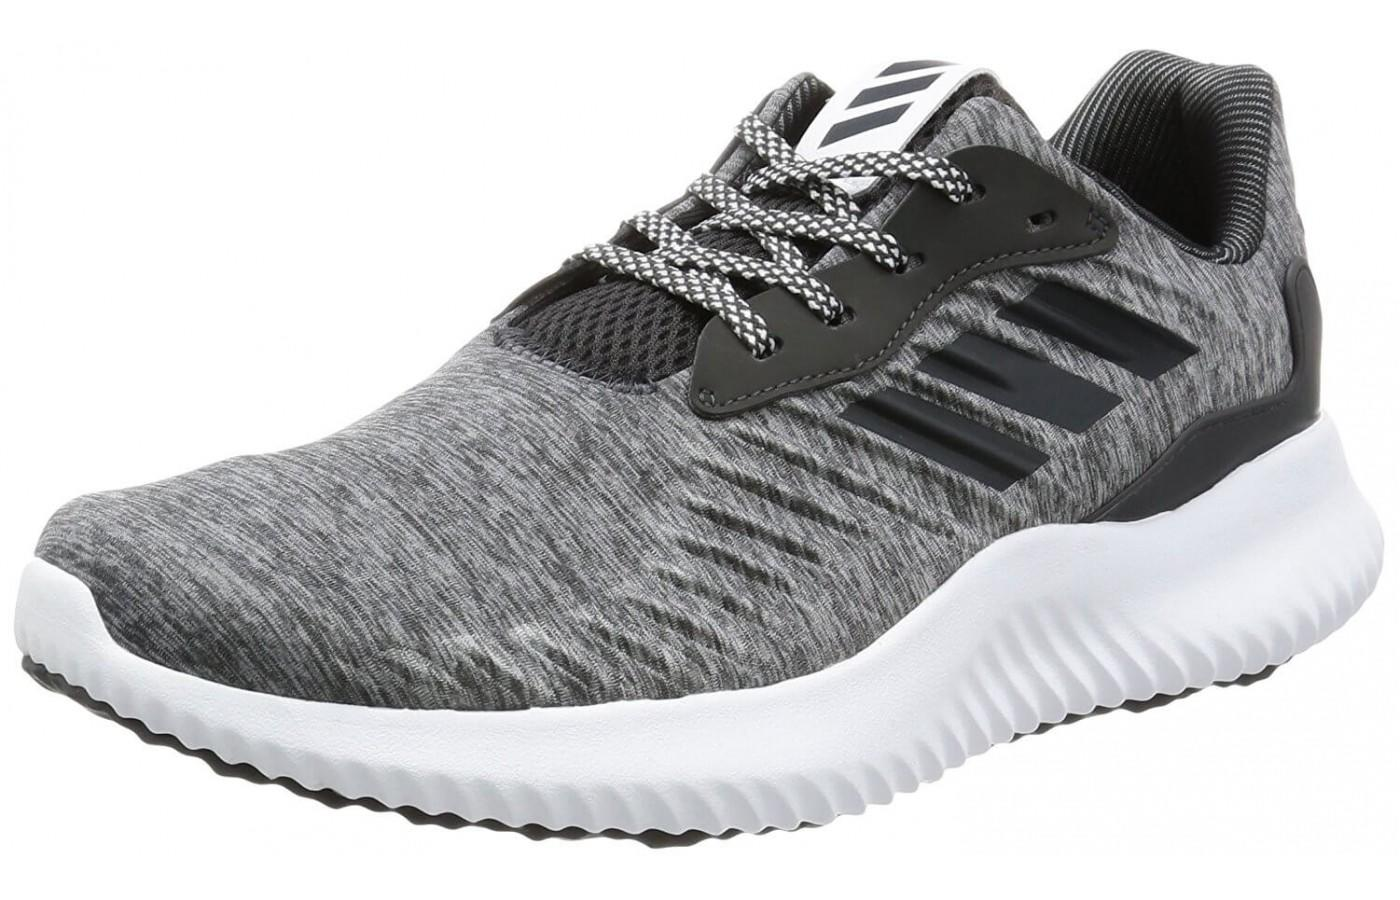 3ebee0d14ca2e Adidas Alphabounce RC Review - Buy or Not in May 2019